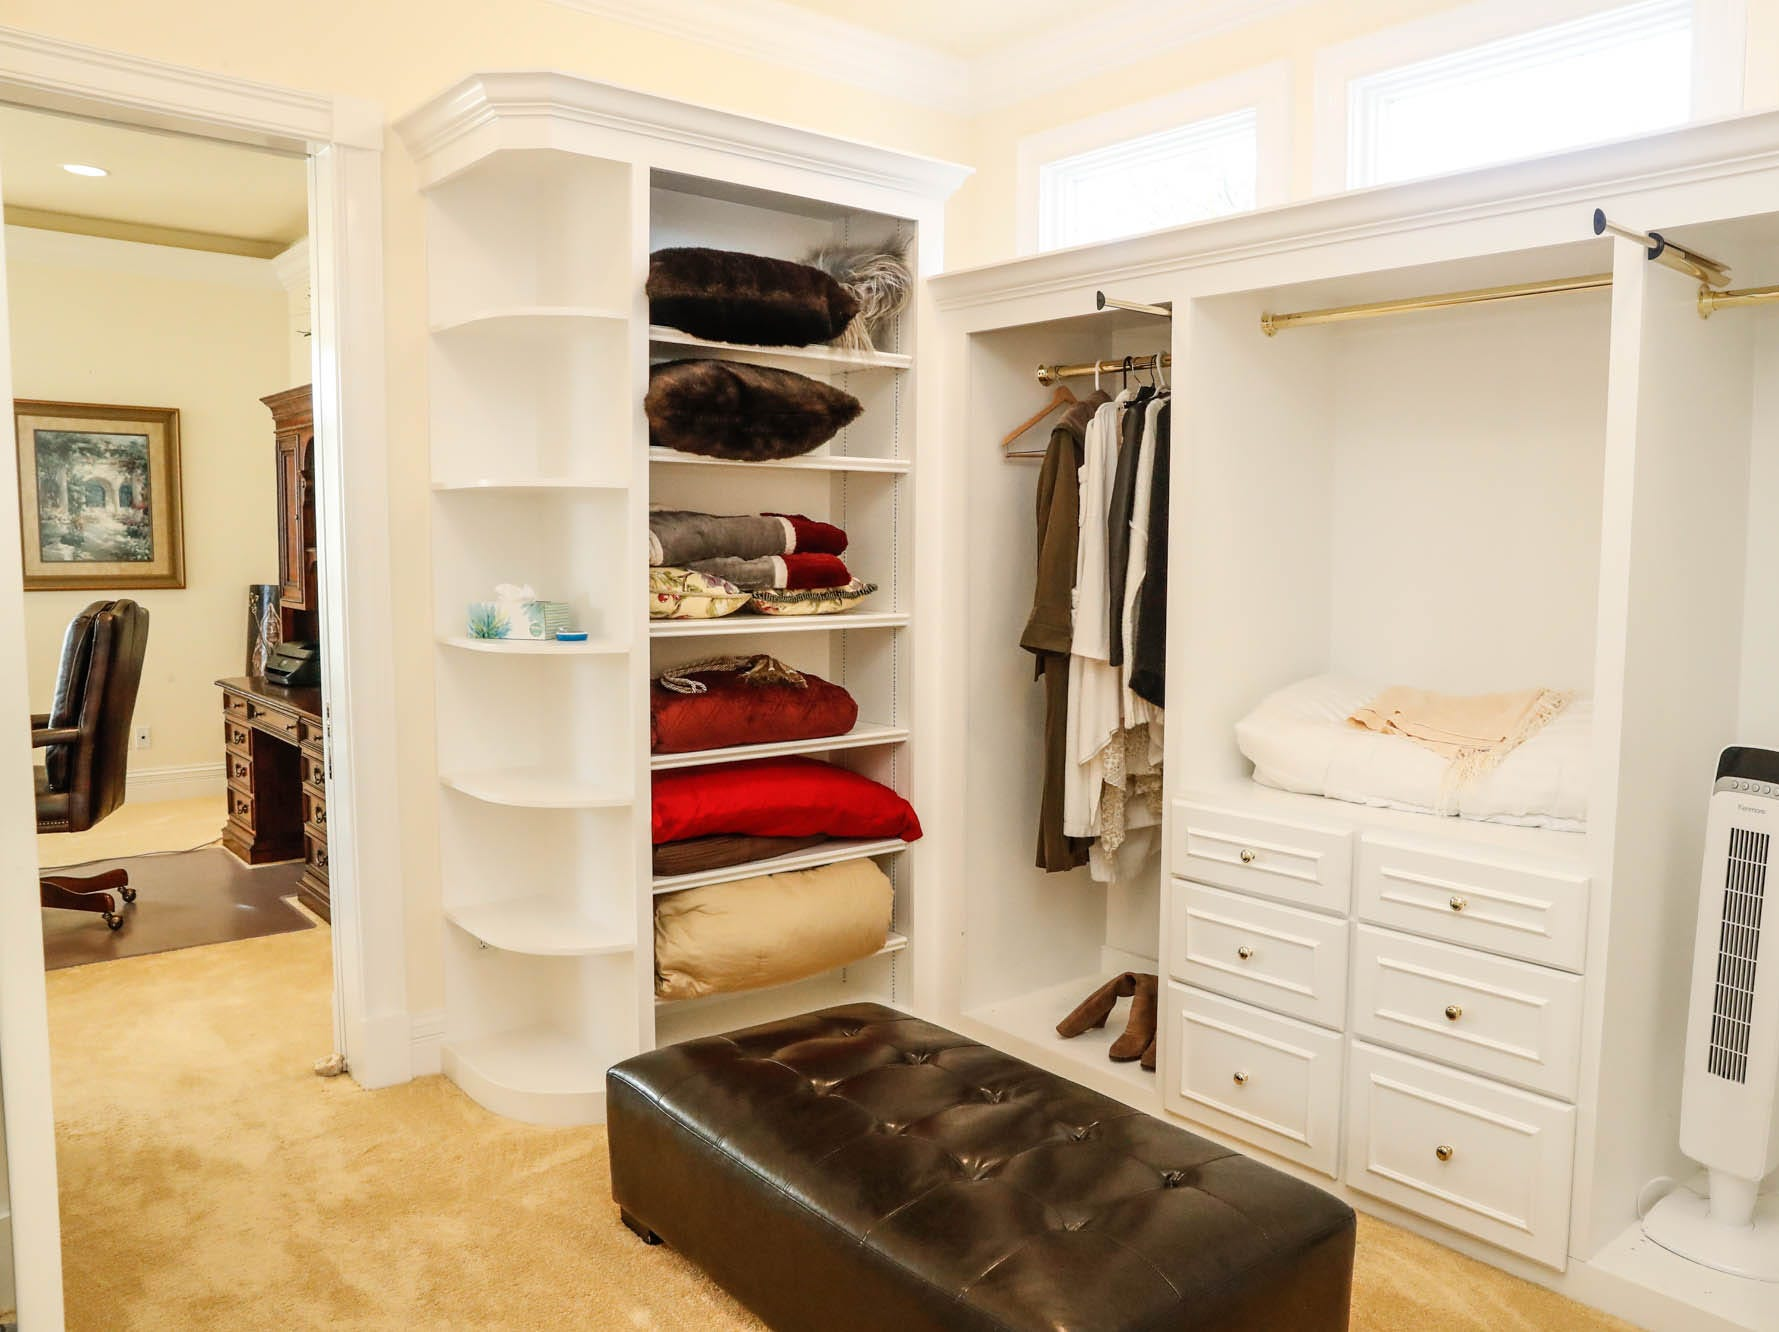 A large walk-in closet offers copious storage at a Greenwood home up for sale at 1216 Stone Ridge Court, Greenwood, Ind. on Wednesday, Jan. 30, 2019. The home features 8,234 square feet, four bedrooms, two master suites, a 10 car garage, and an exercise room.